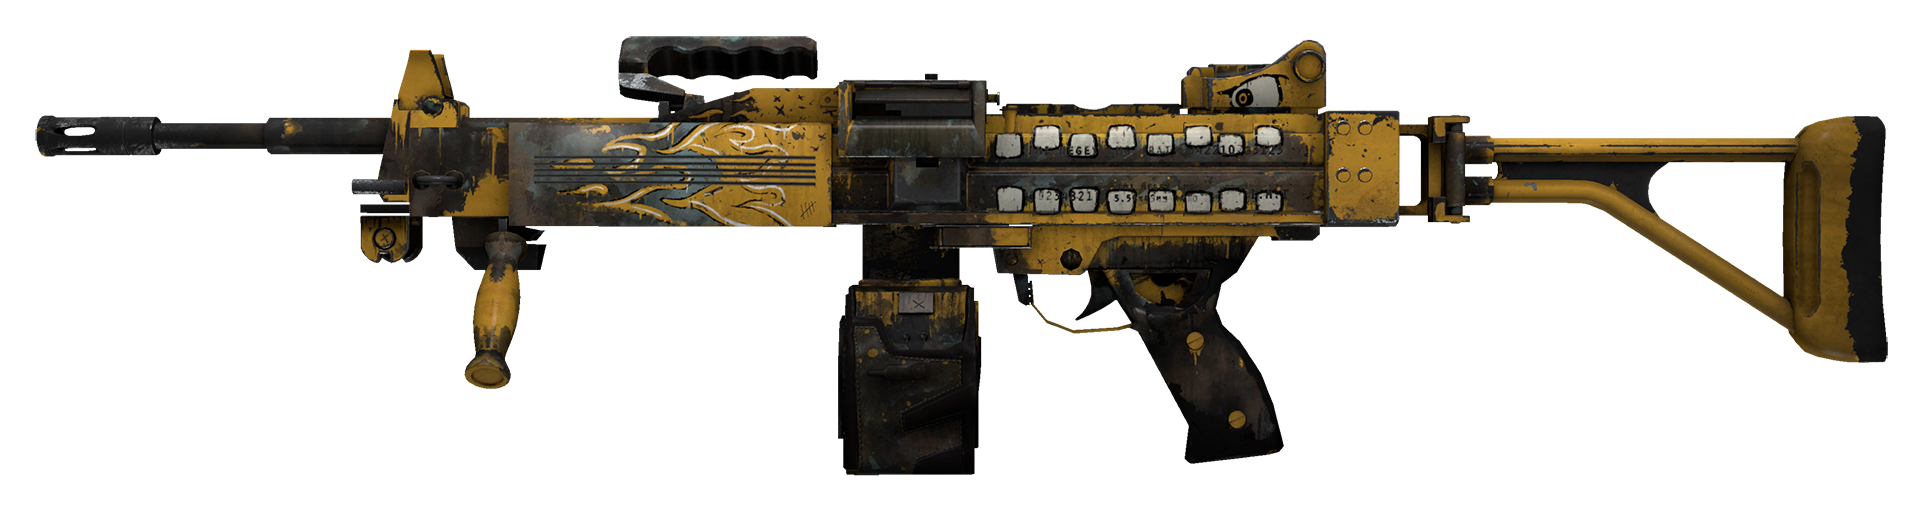 Negev Loudmouth Large Rendering